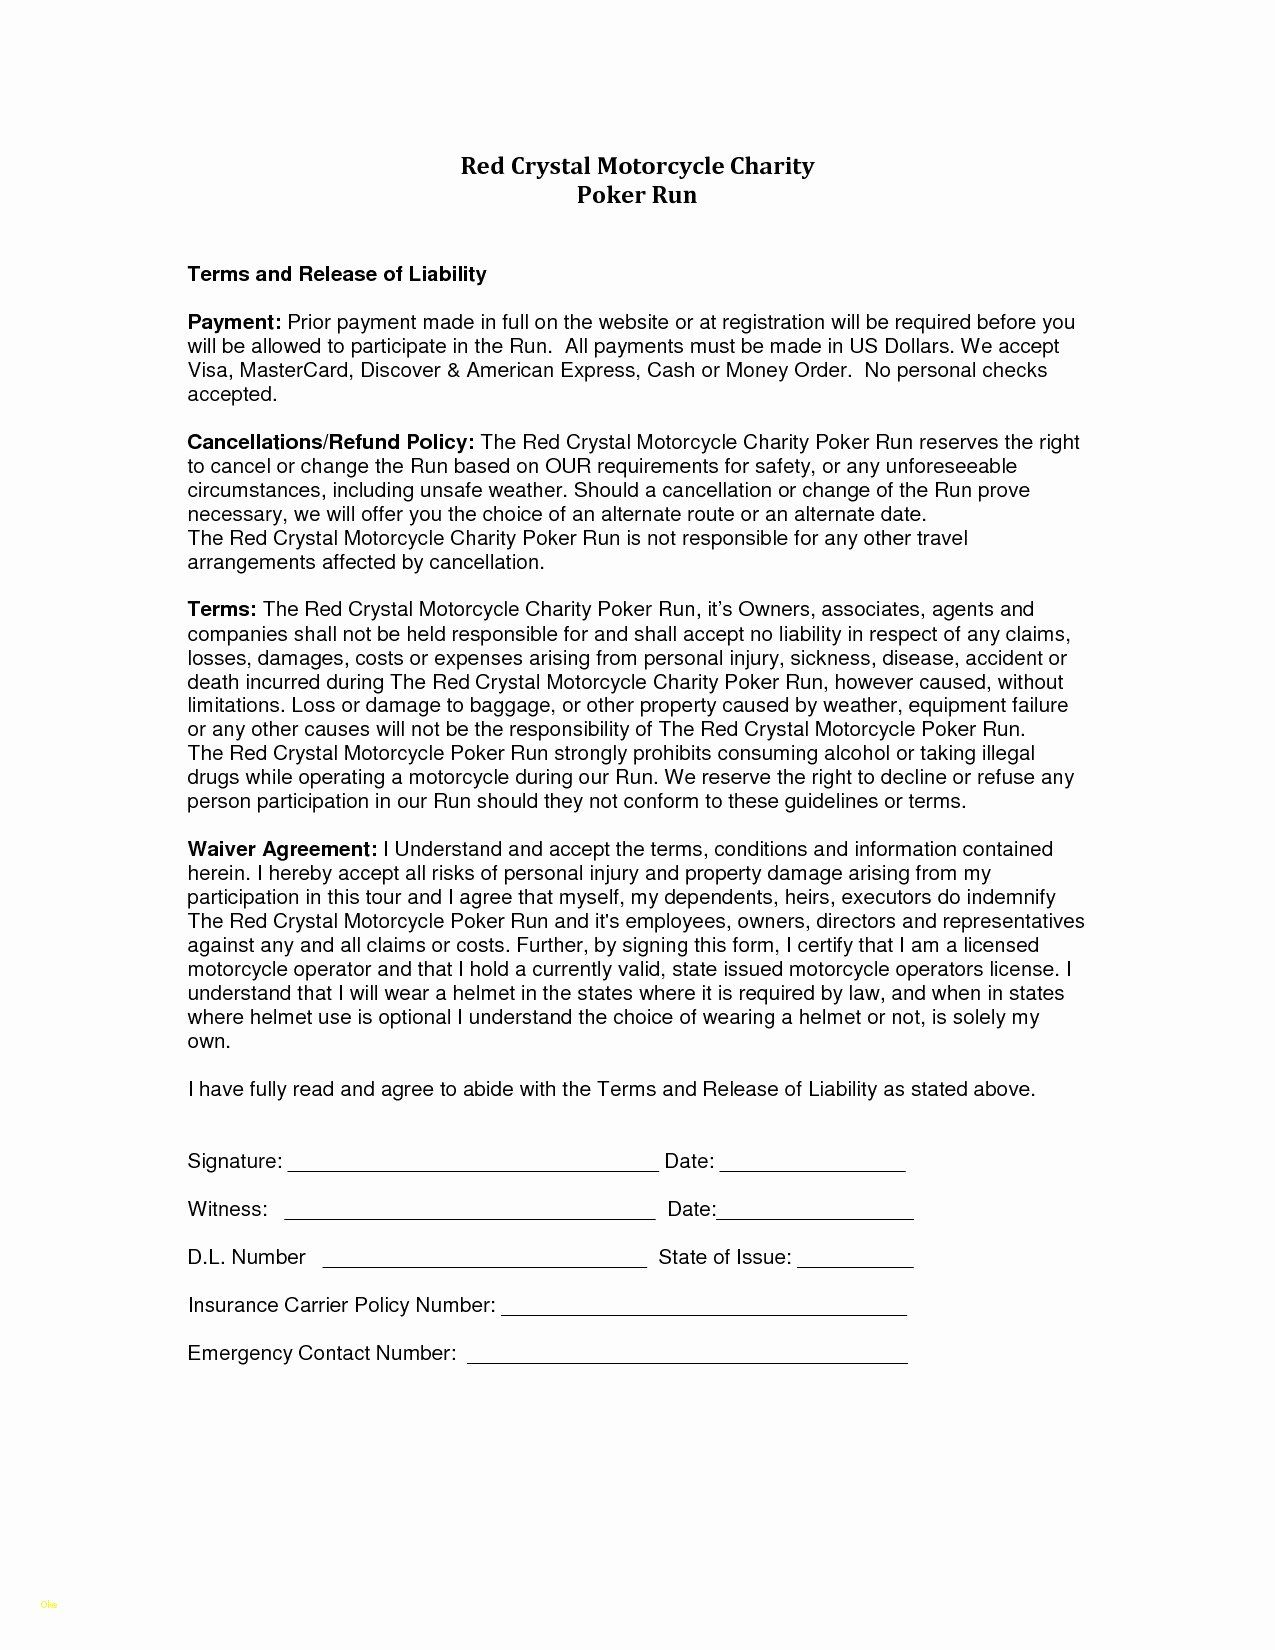 Beautiful Liability Release Forms Template In 2020 Templates Reference Letter